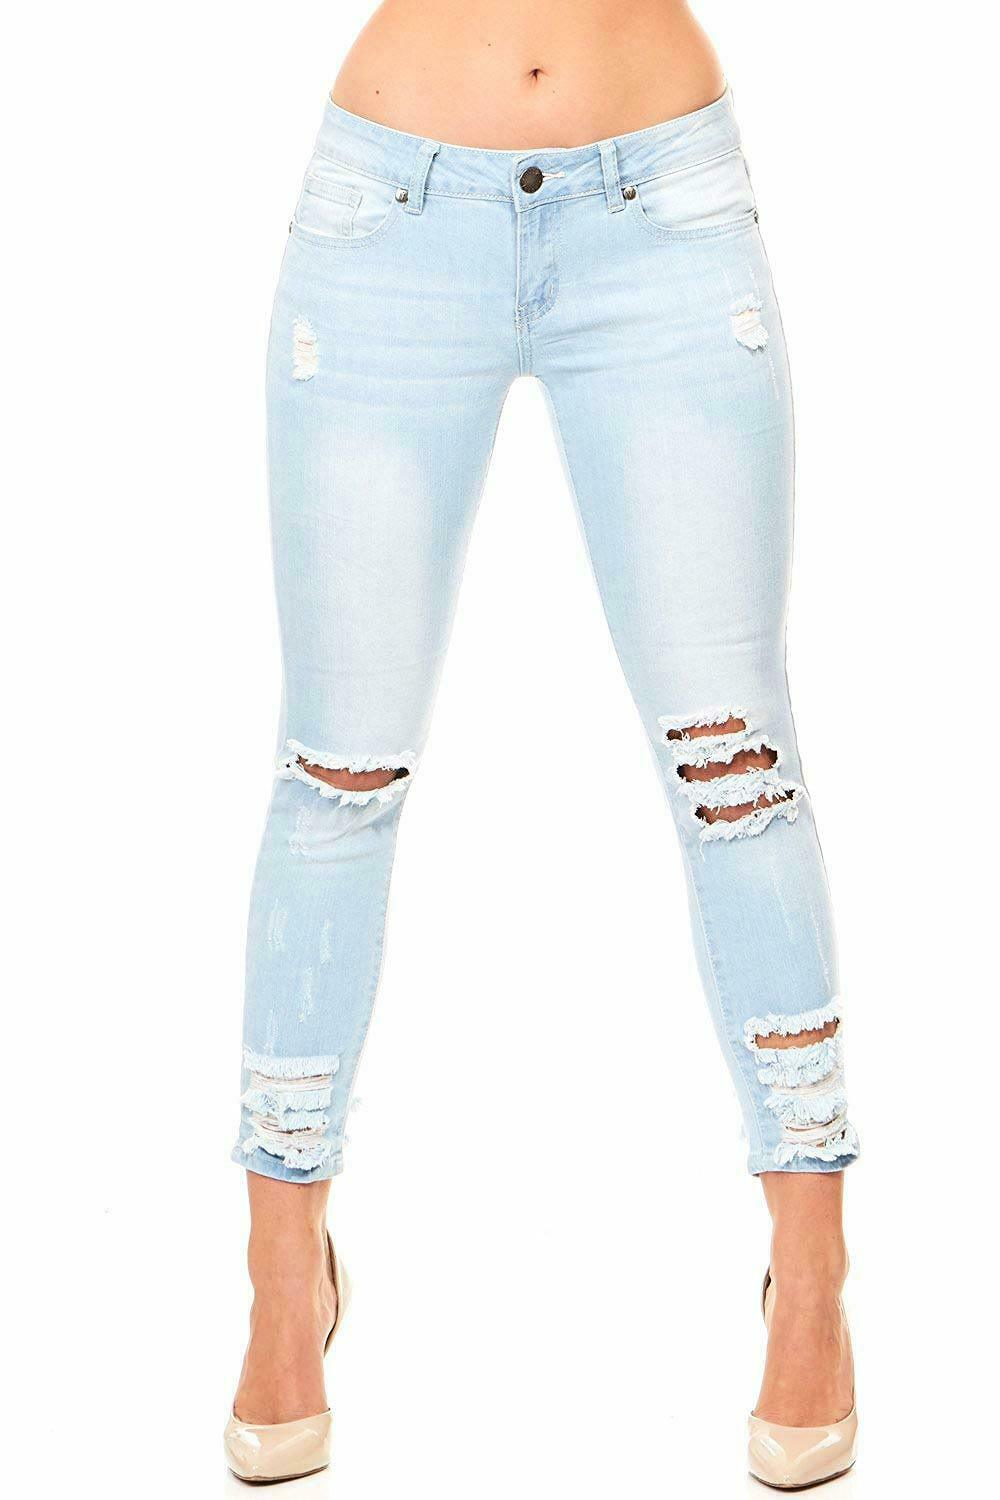 Cover Girl Women's Ripped Cropped Skinny Jeans, - Choose SZ color